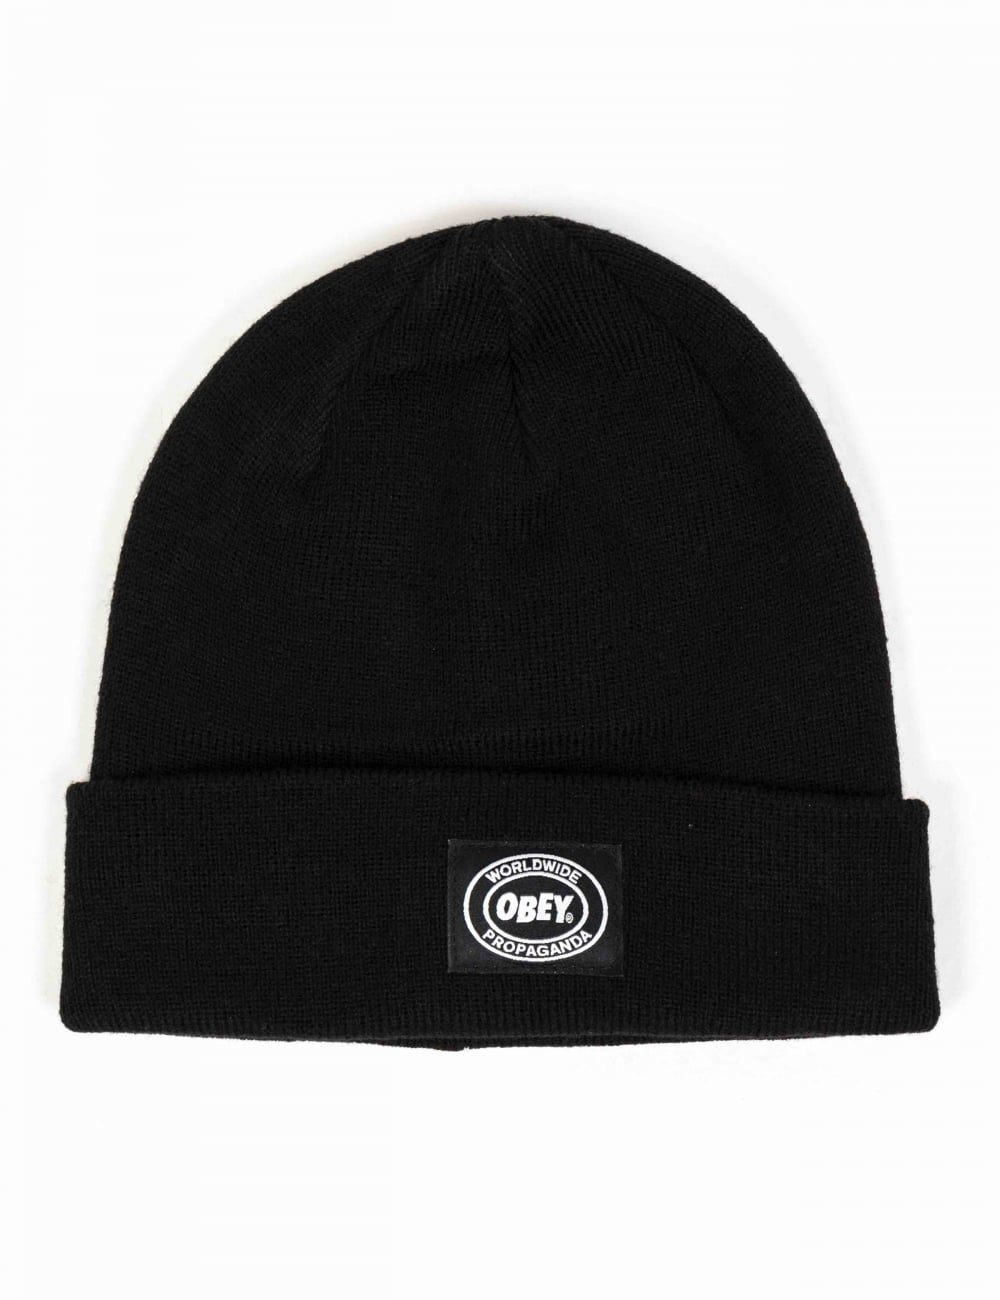 Obey Clothing Onset Beanie Hat - Black - Accessories from Fat Buddha ... 894e126a44ac